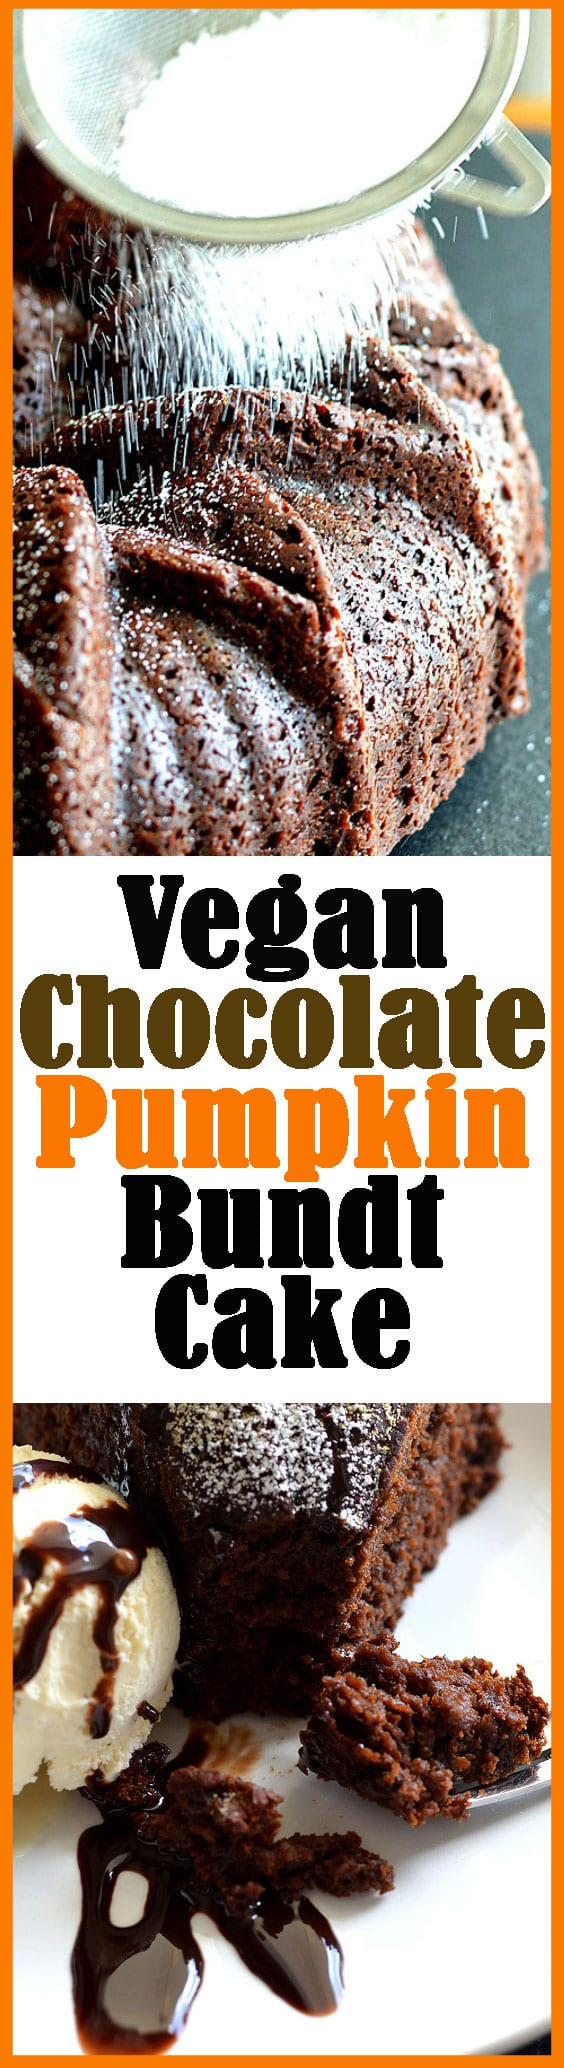 Vegan Chocolate Pumpkin Bundt Cake